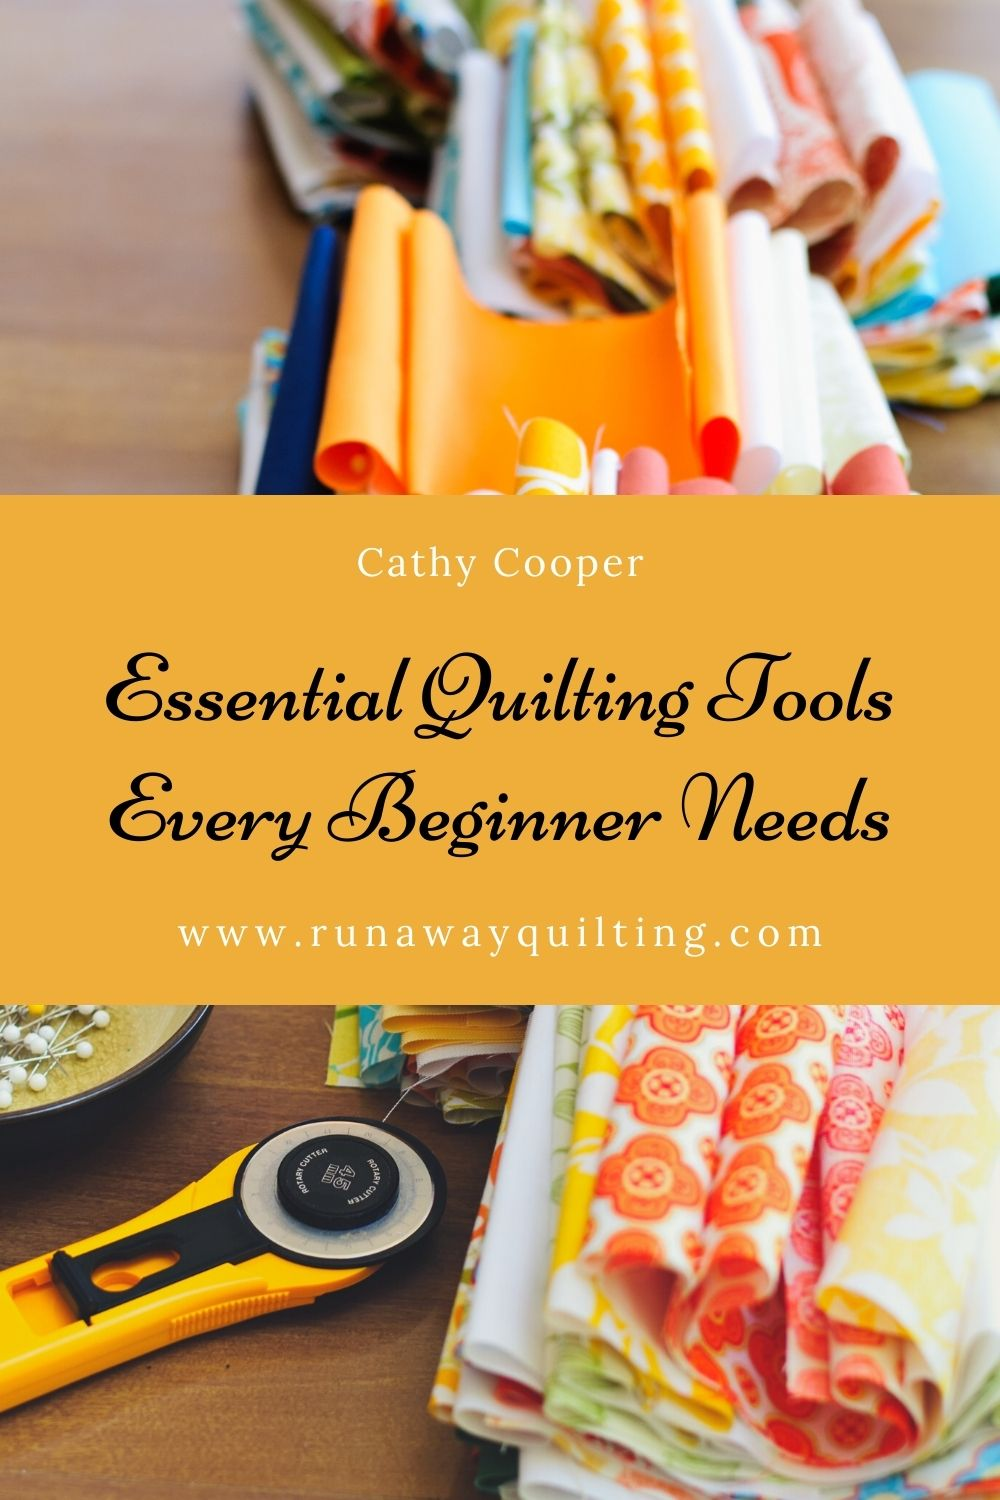 Essential Quilting Tools Every Beginner Needs